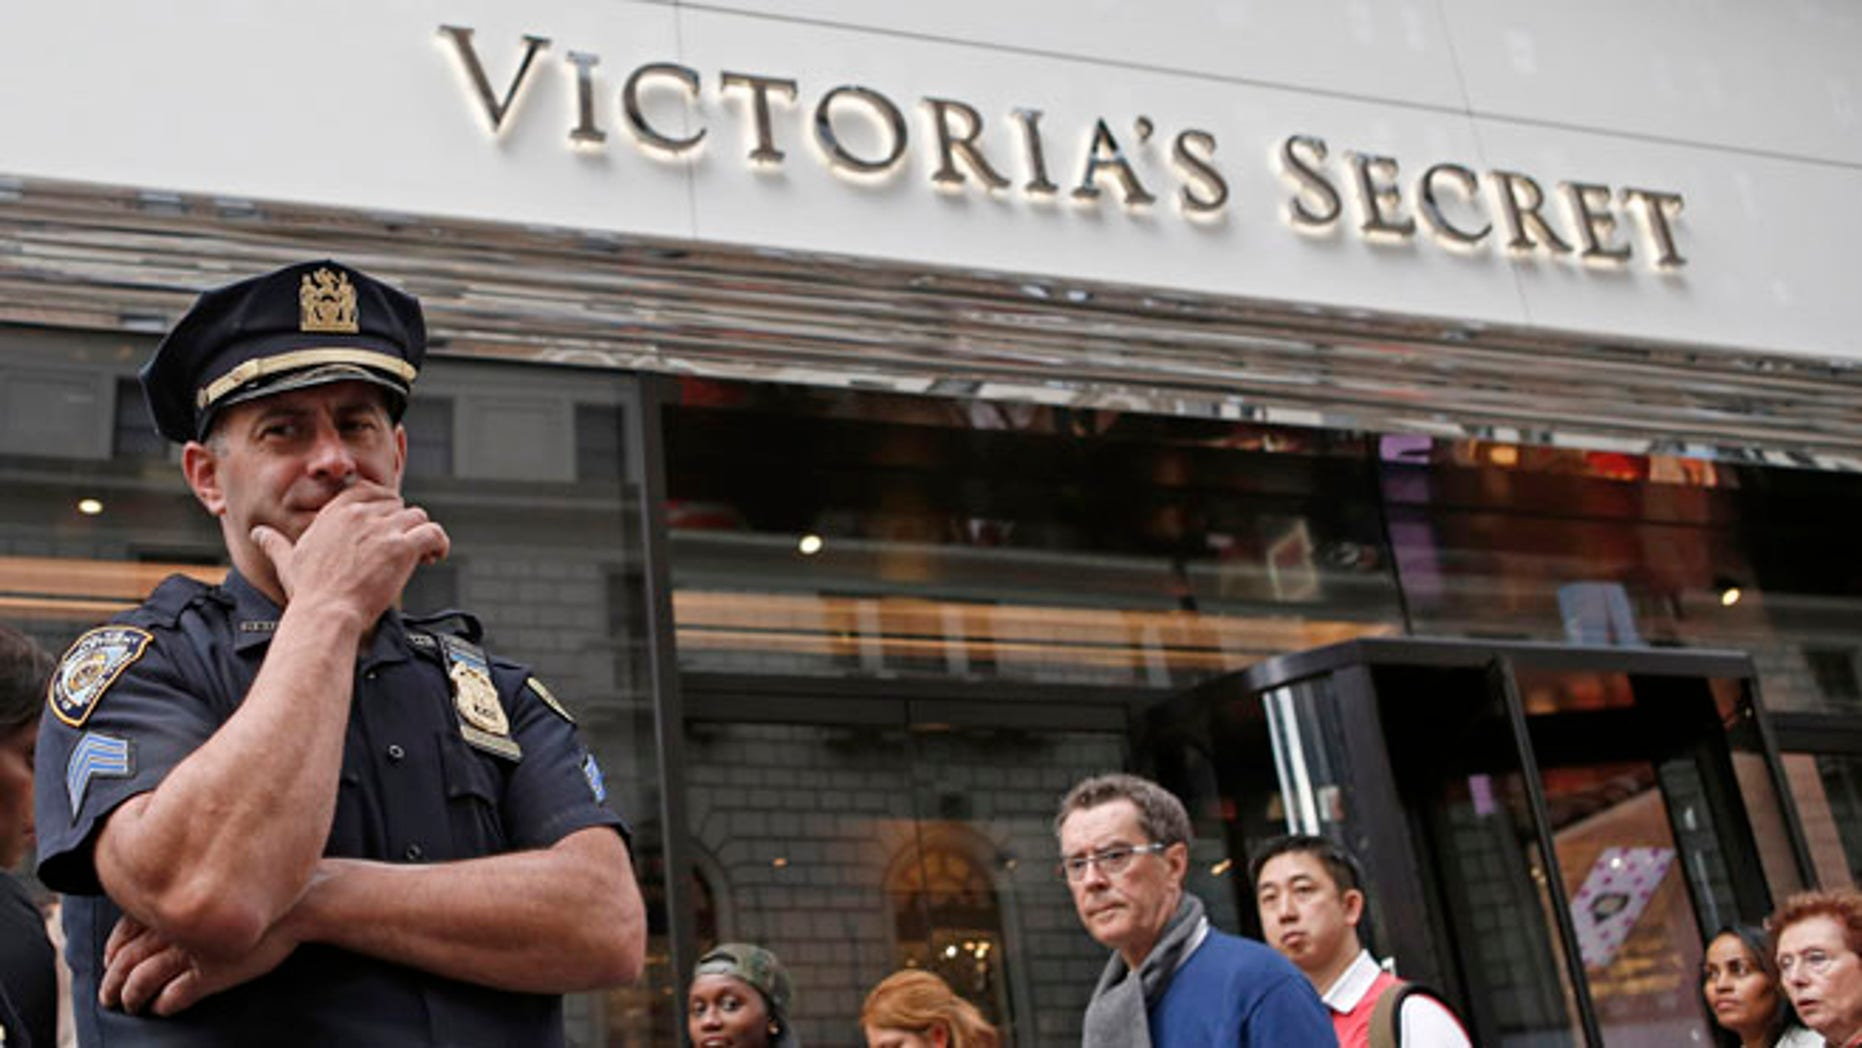 Oct. 17, 2013: A New York City police officer stands in front of the Victoria's Secret Herald Square store in midtown Manhattan in New York.